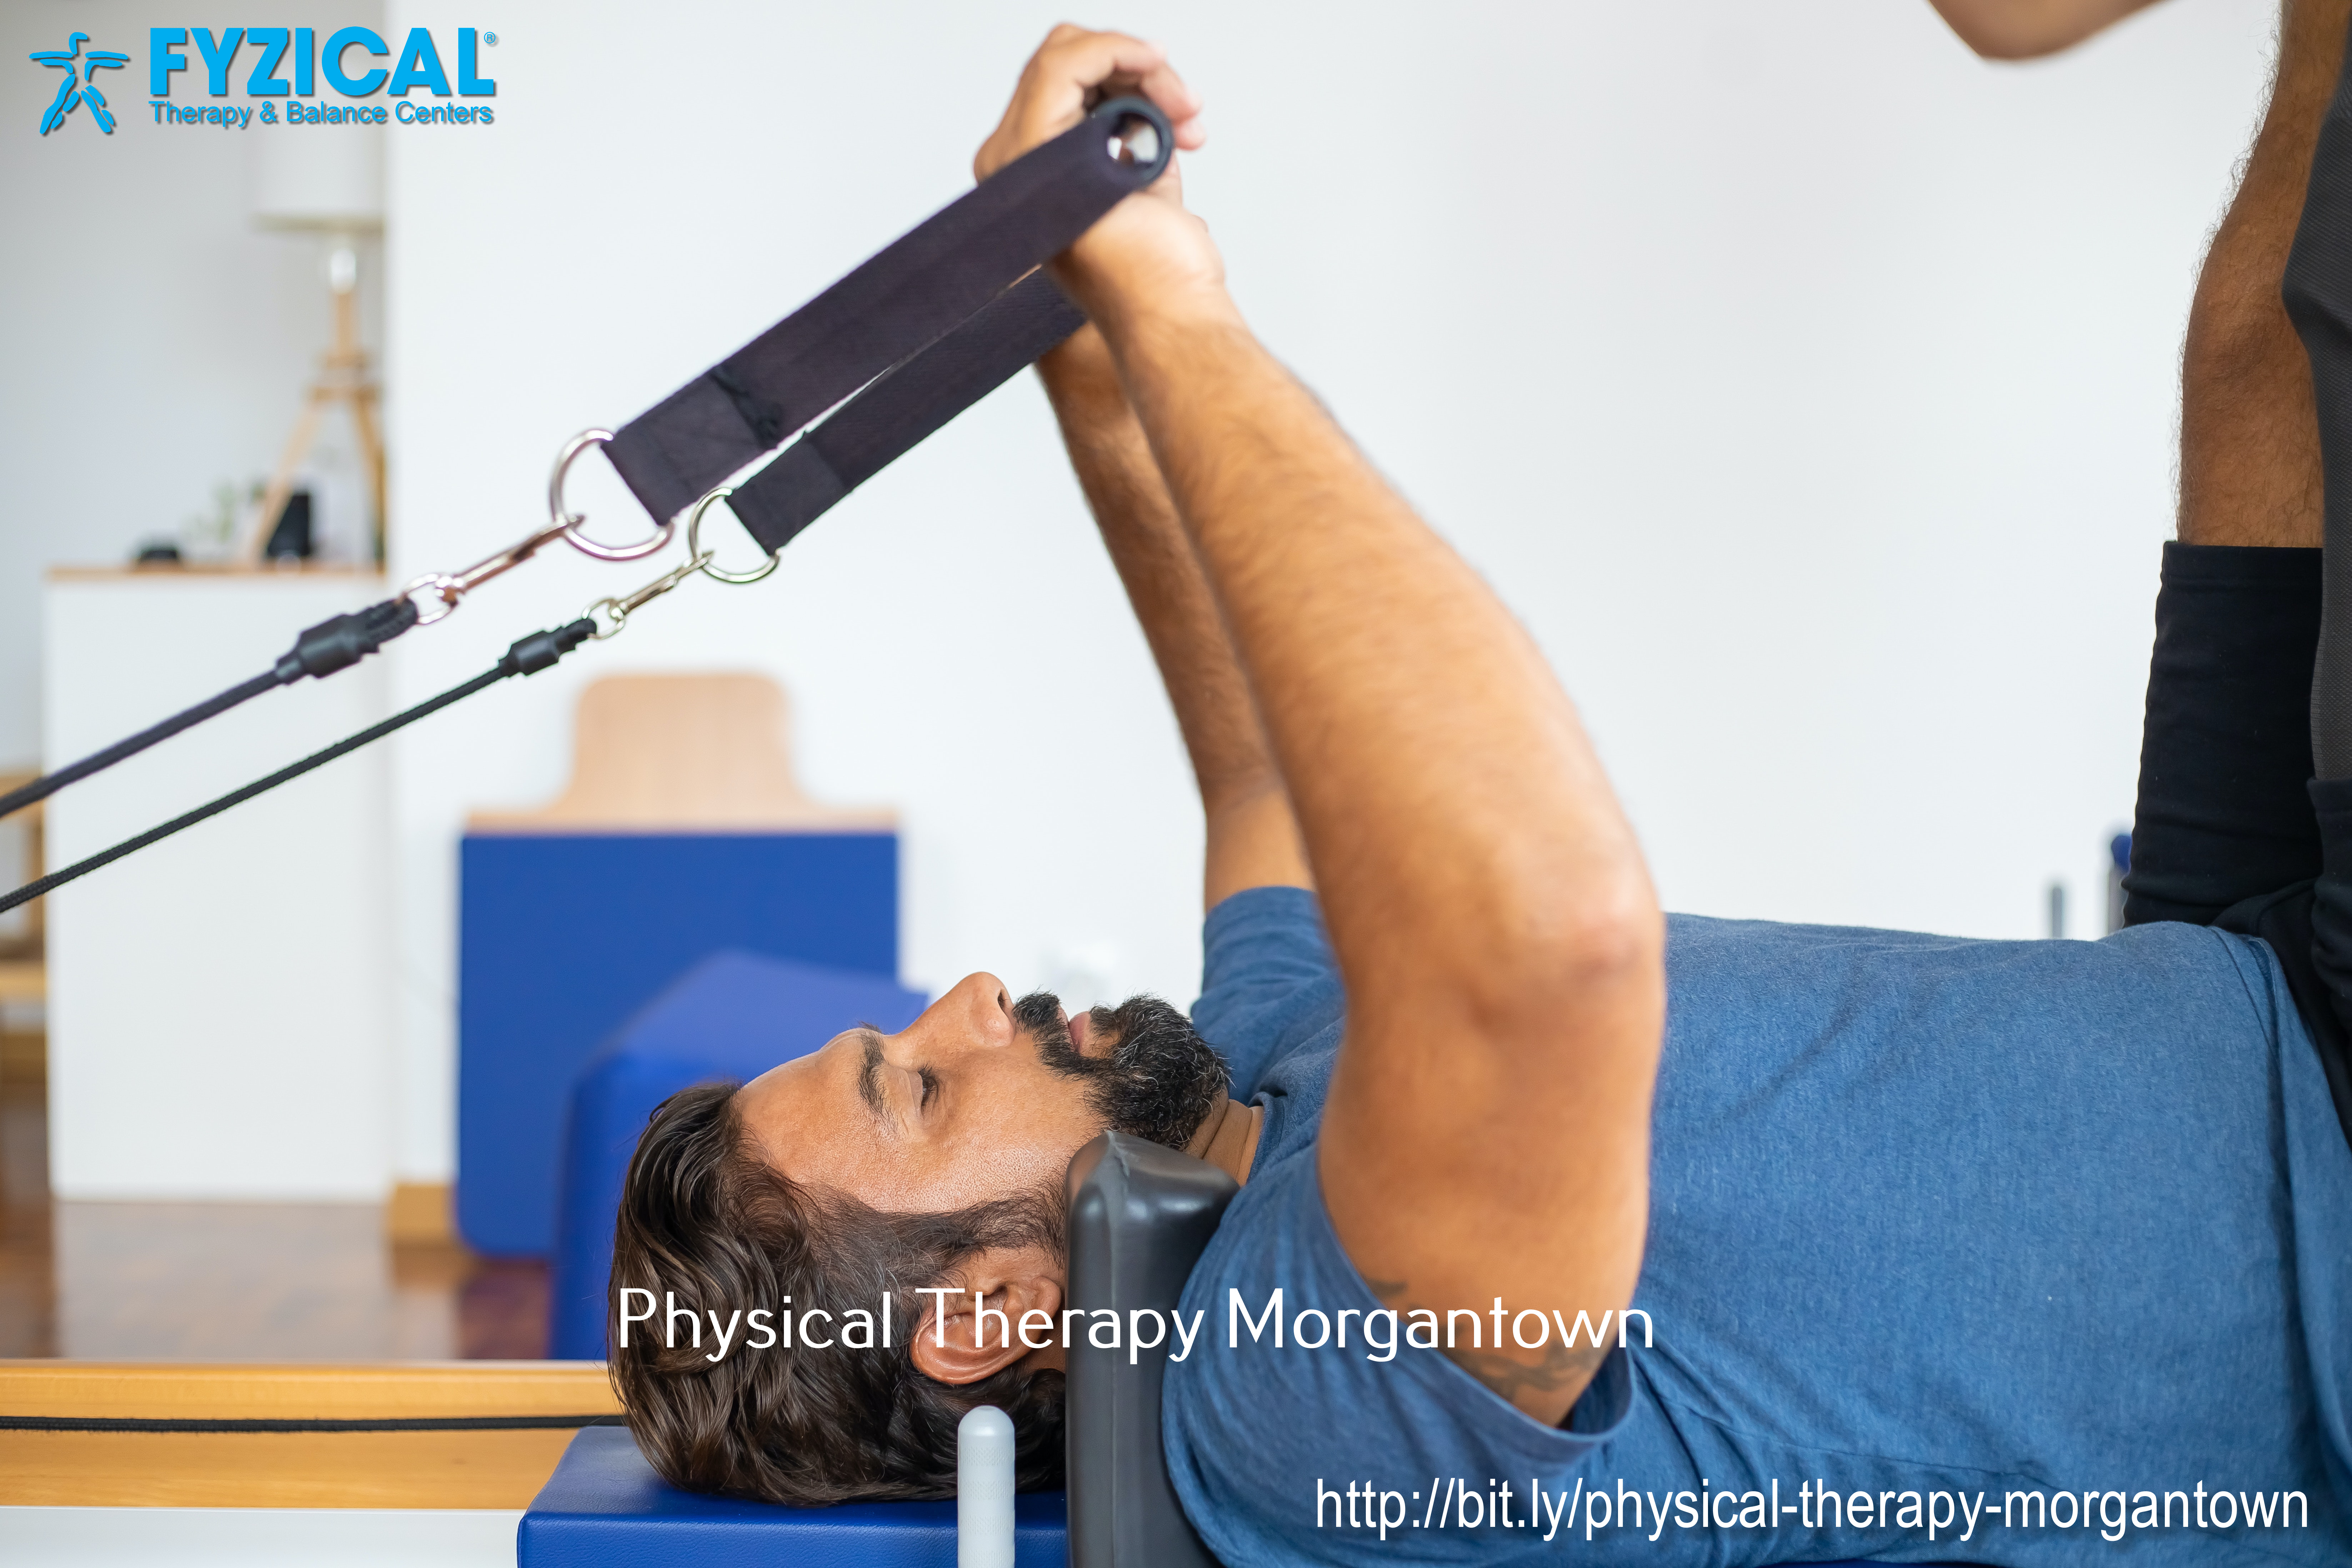 Is Telehealth Effective? FYZICAL Therapy and Balance Centers Have the Answers.